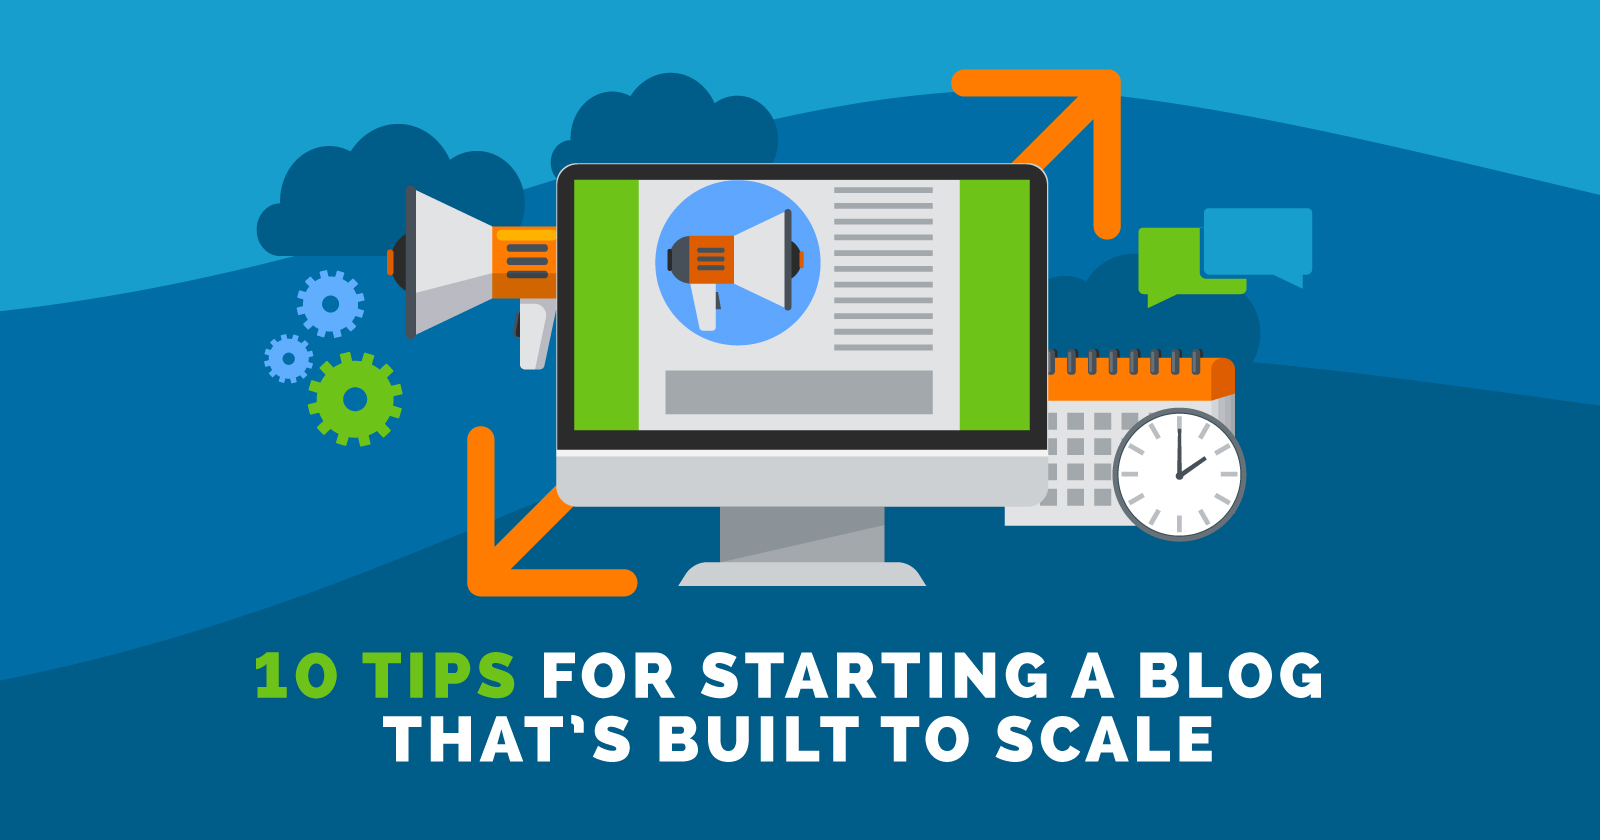 10 Tips for Starting a Blog That's Built to Scale